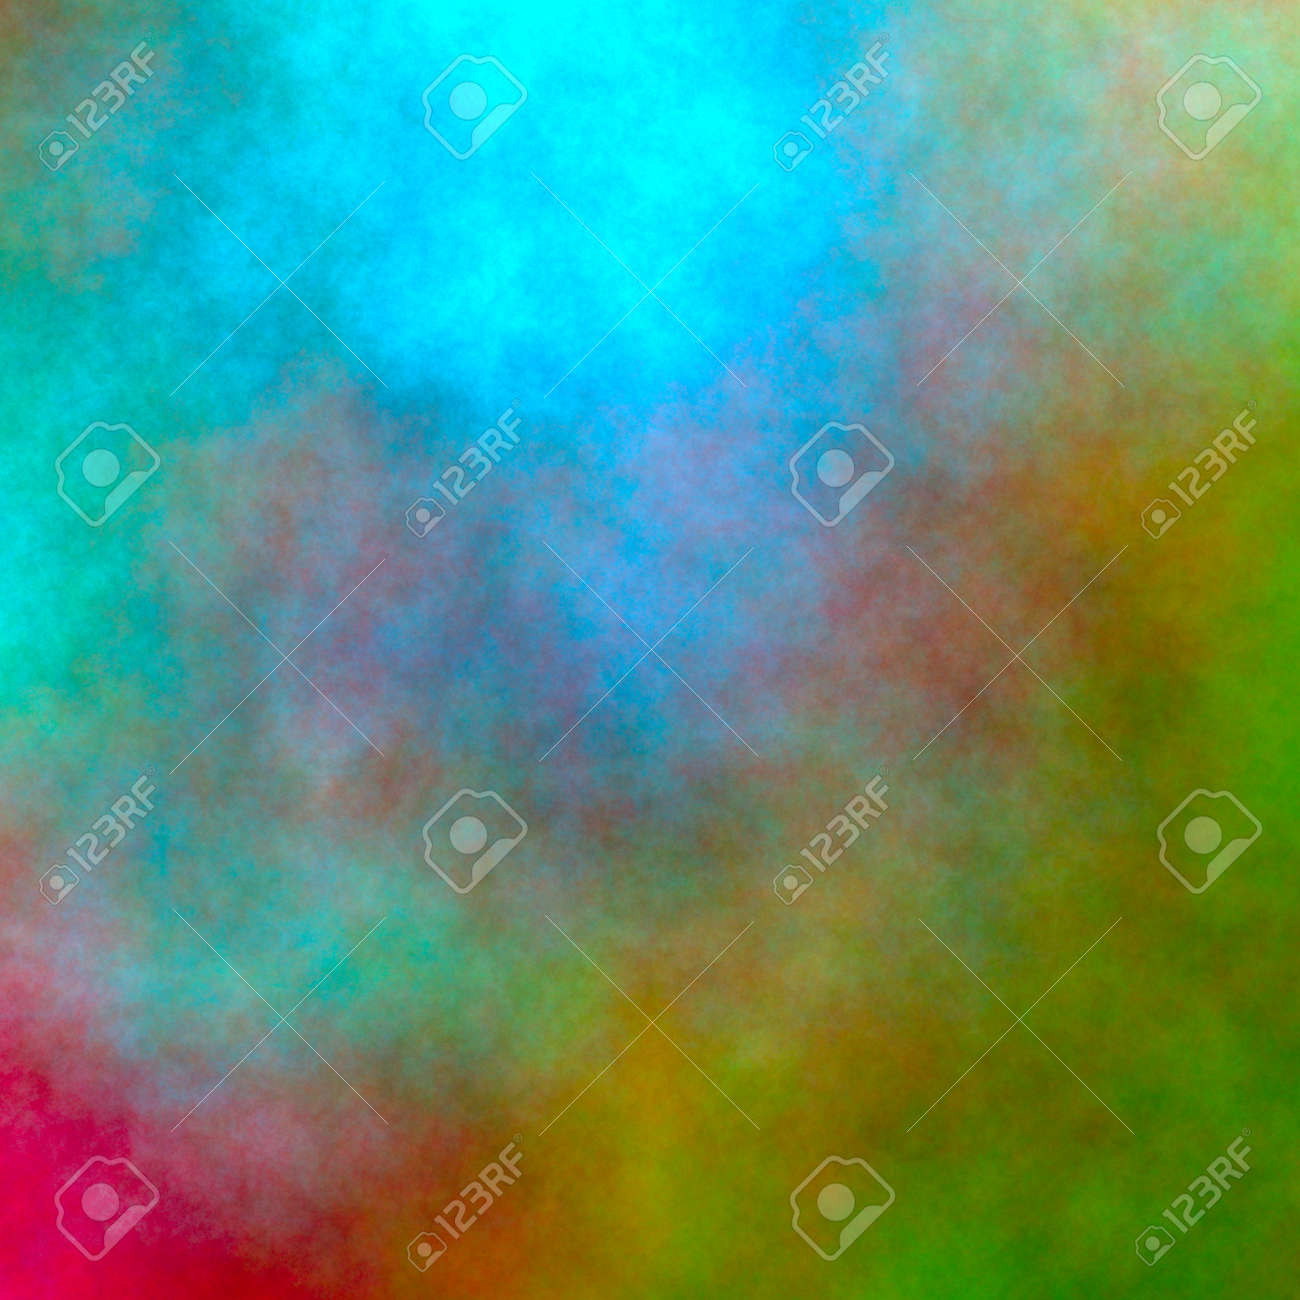 Abstract watercolor background. Irregular pattern in fall colors. - 156683748